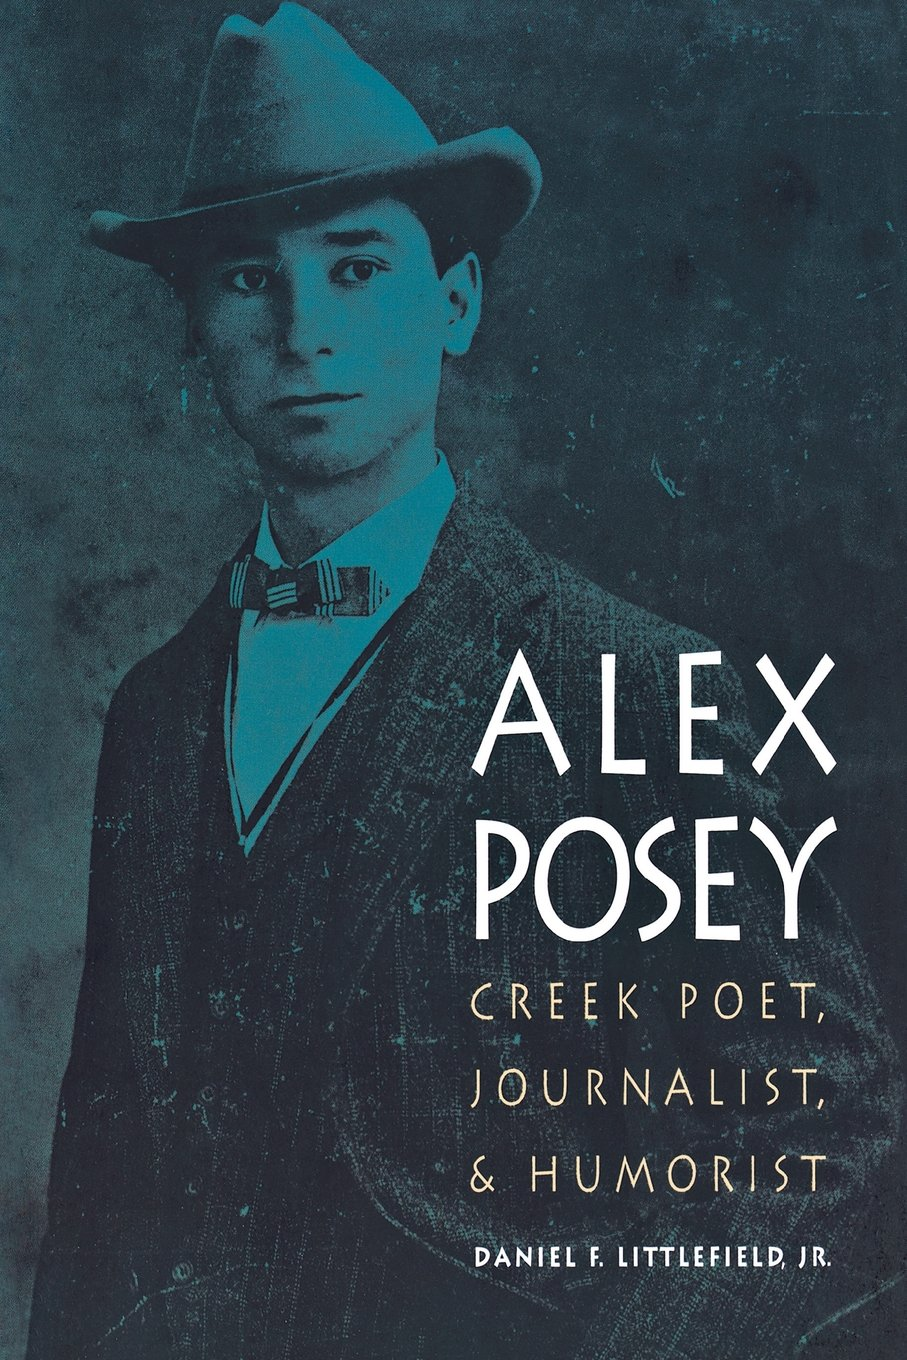 alex-posey-creek-poet-journalist-and-humorist-american-indian-lives